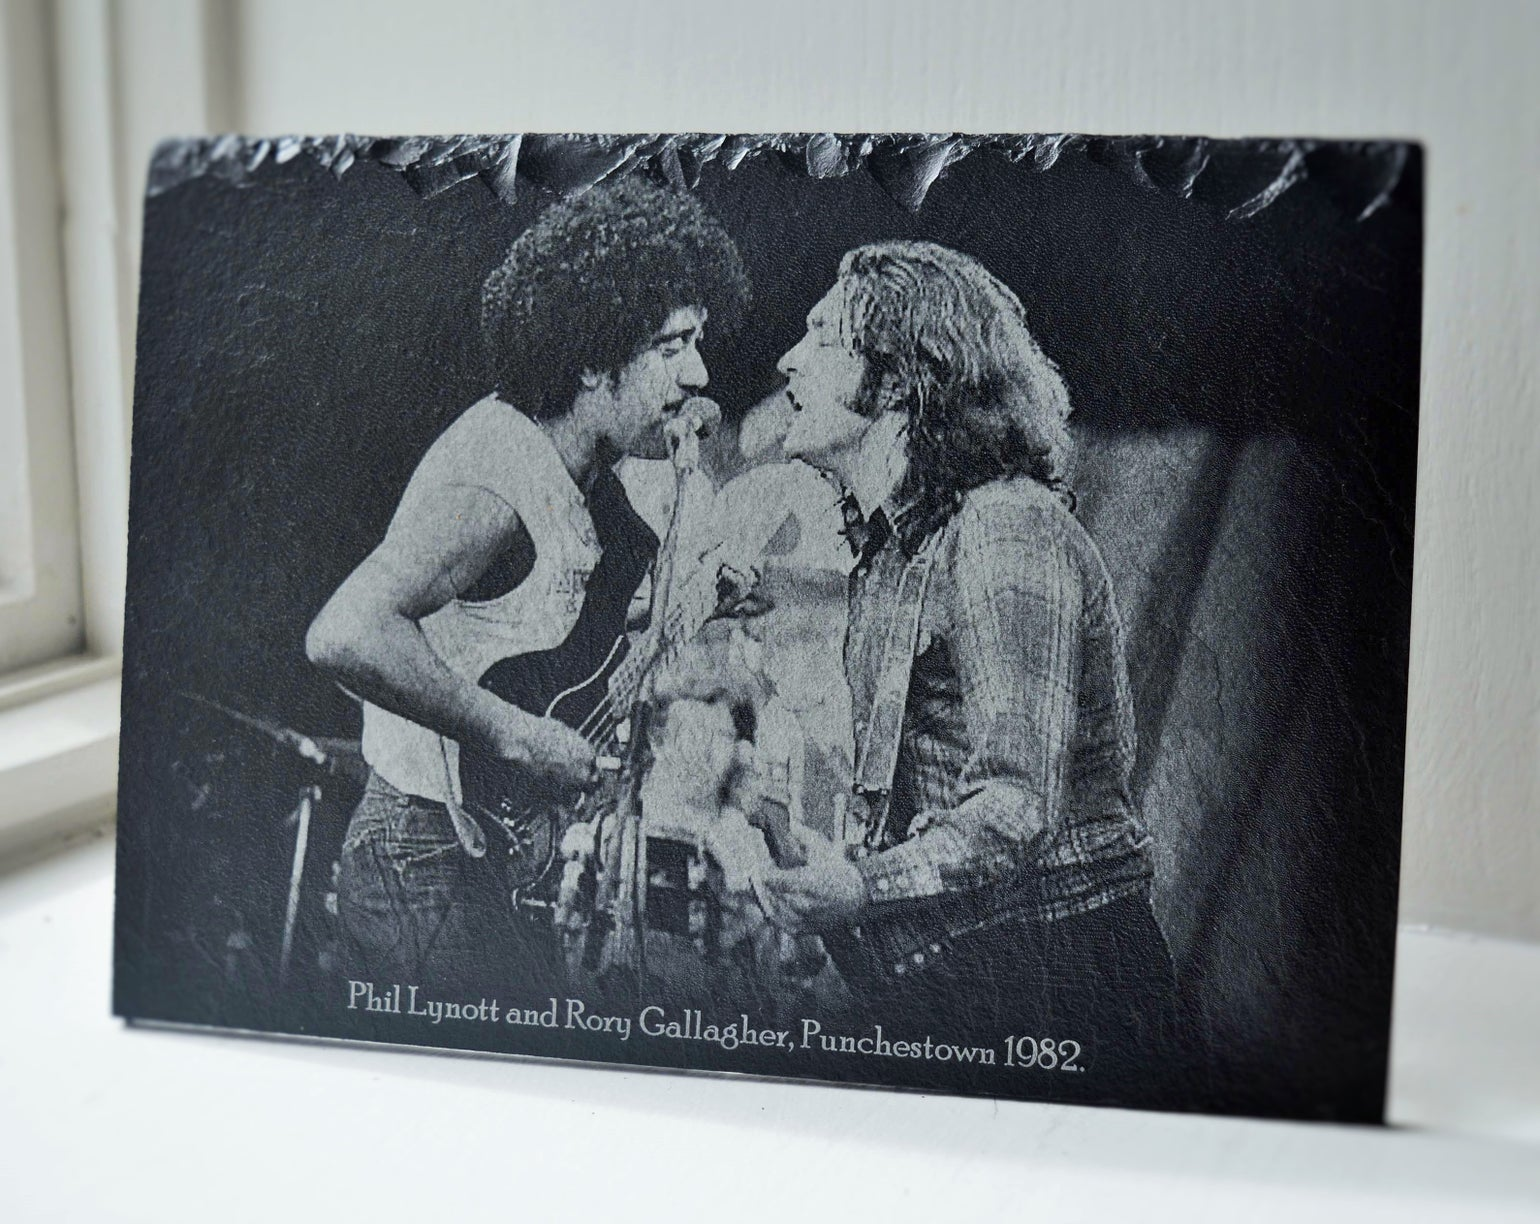 Image of Phil Lynott & Rory Gallagher